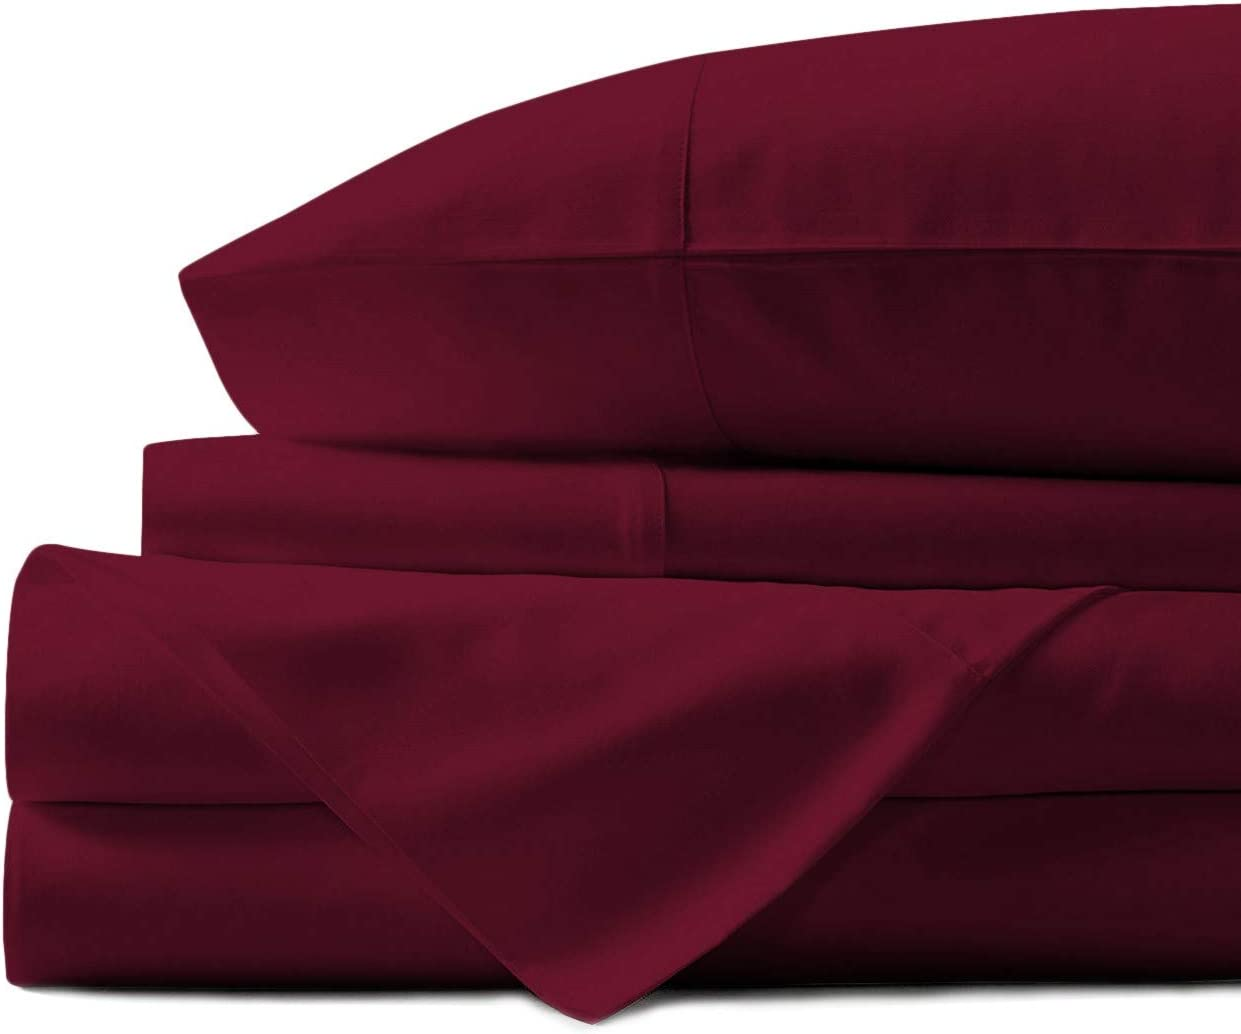 Mayfair Linen 100% Egyptian Cotton Sheets, Burgundy Twin Sheets Set, 800 Thread Count Long Staple Cotton, Sateen Weave for Soft and Silky Feel, Fits Mattress Upto 18'' DEEP Pocket